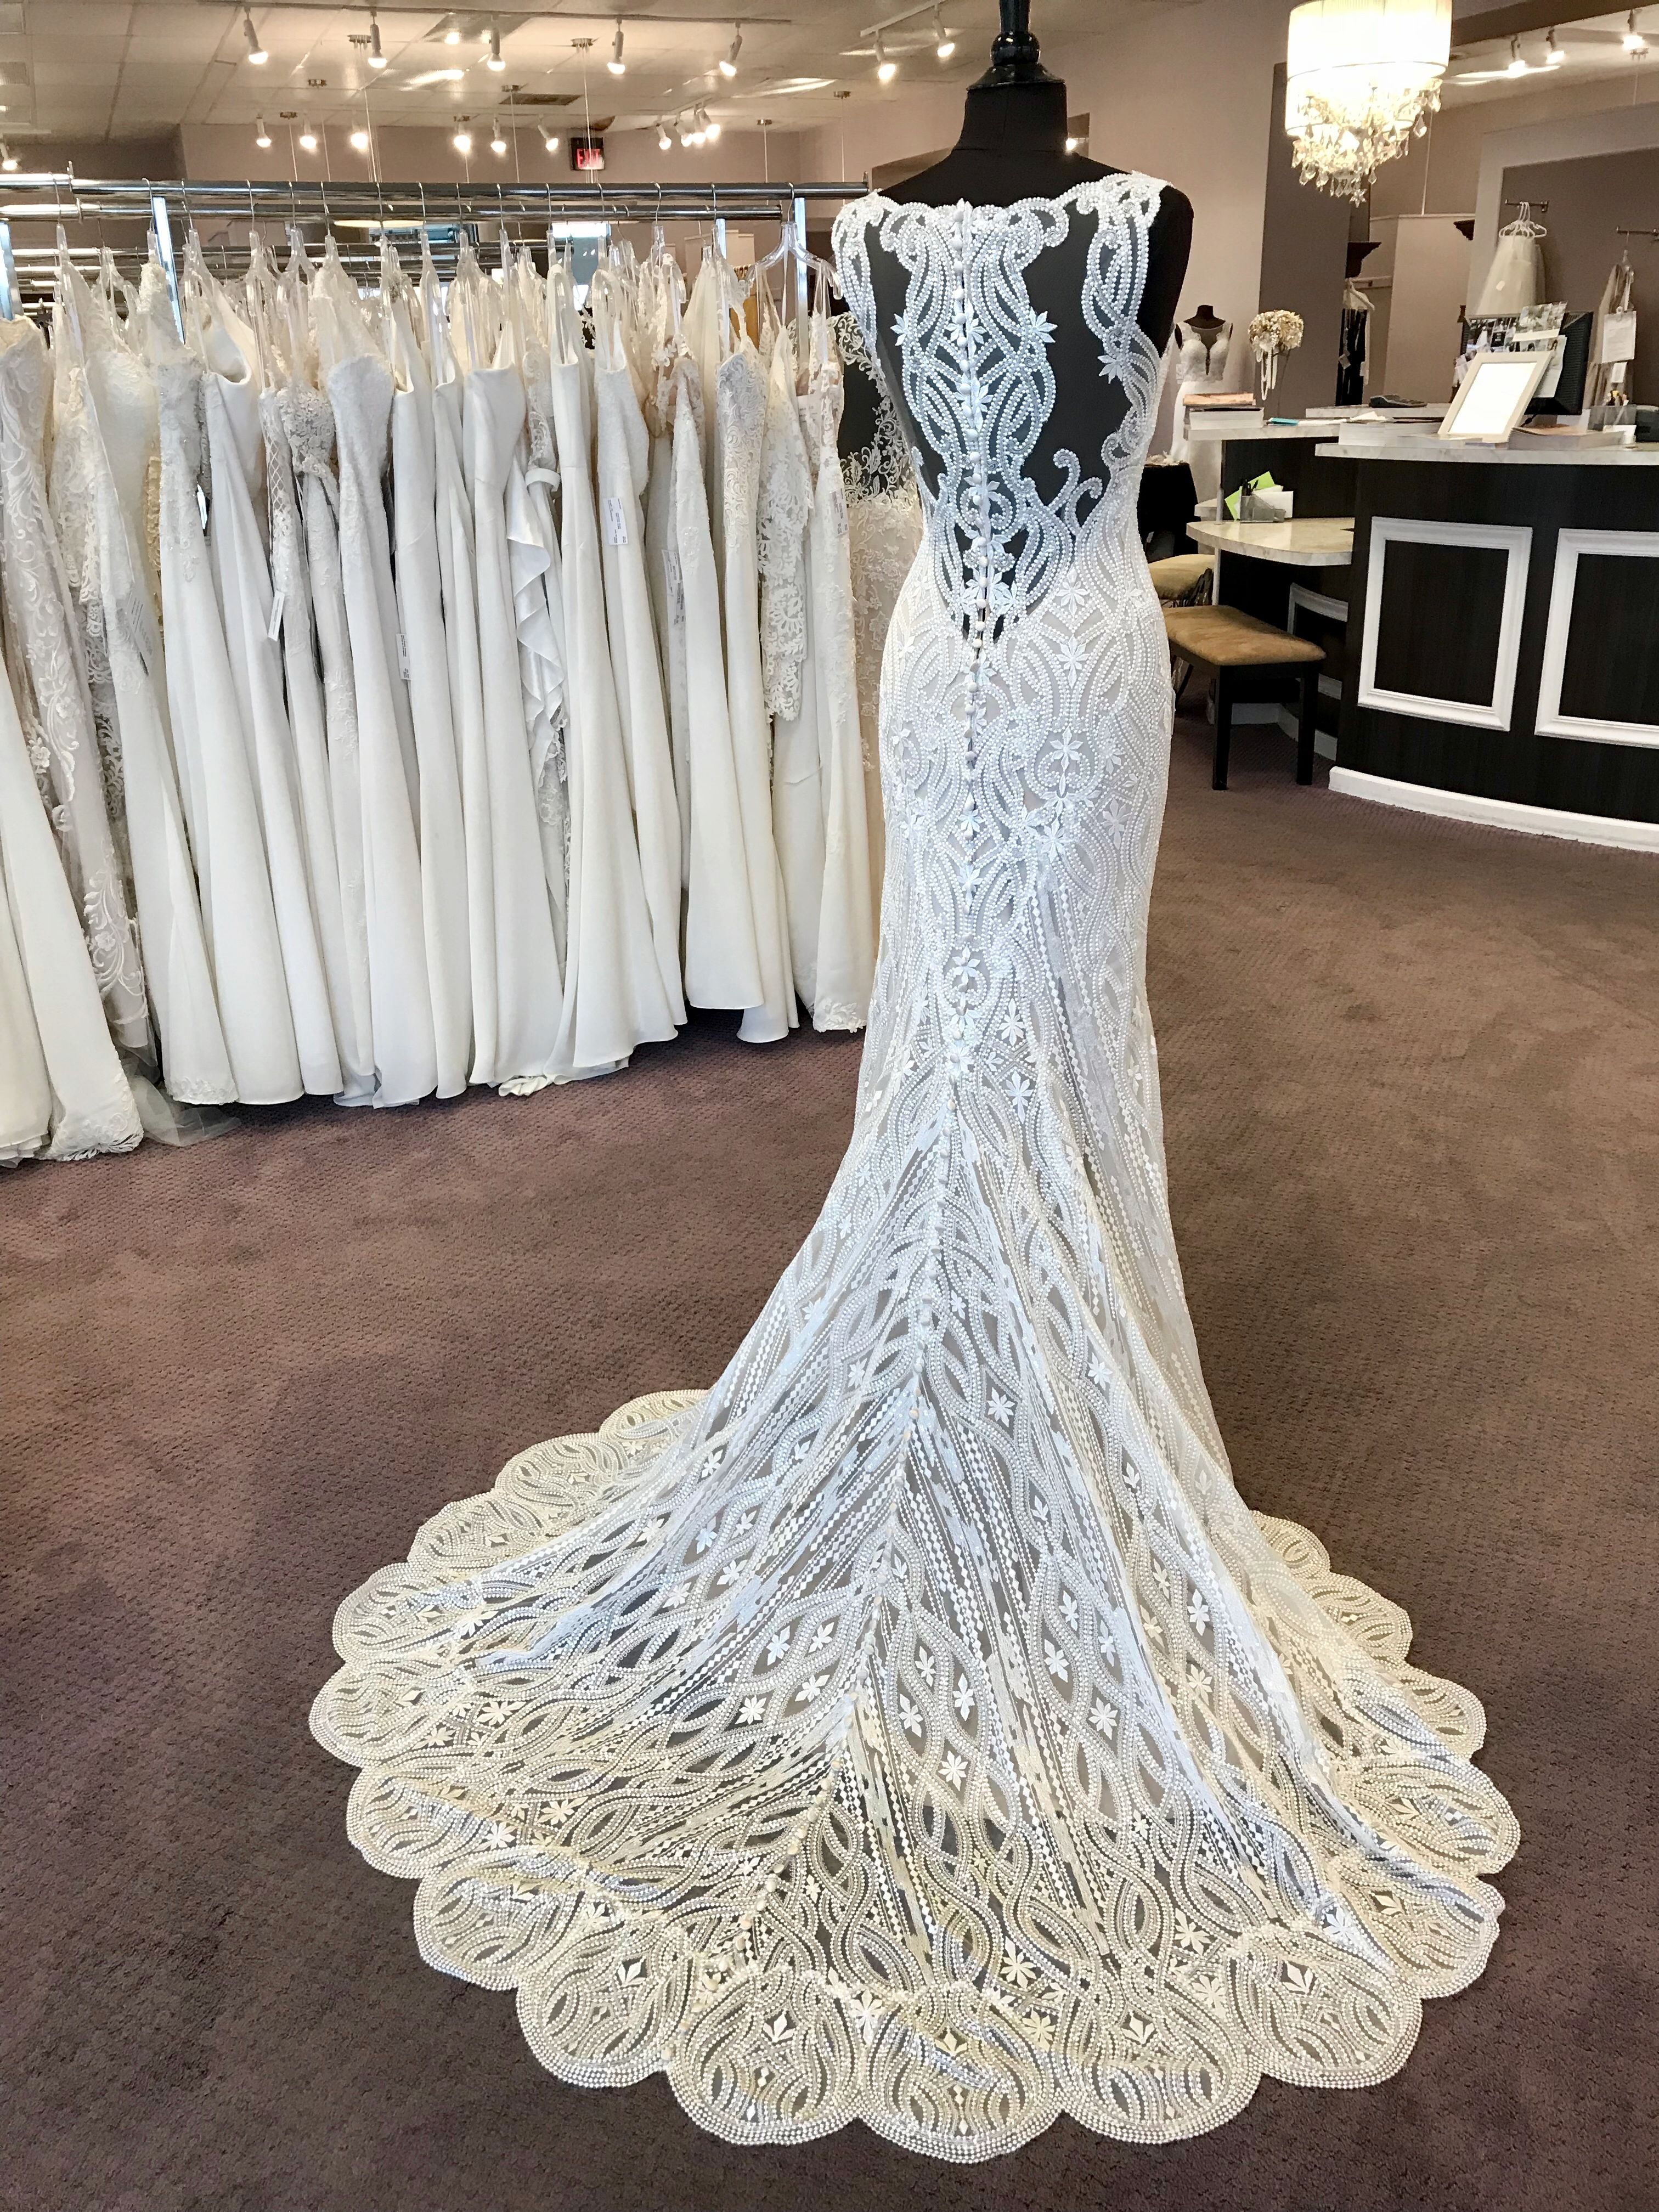 This Dress Is Everything And More For Traintuesday This New Arrival Has A Scalloped Train And Illu Wedding Dress Prices Wedding Dresses Designer Bridal Gowns